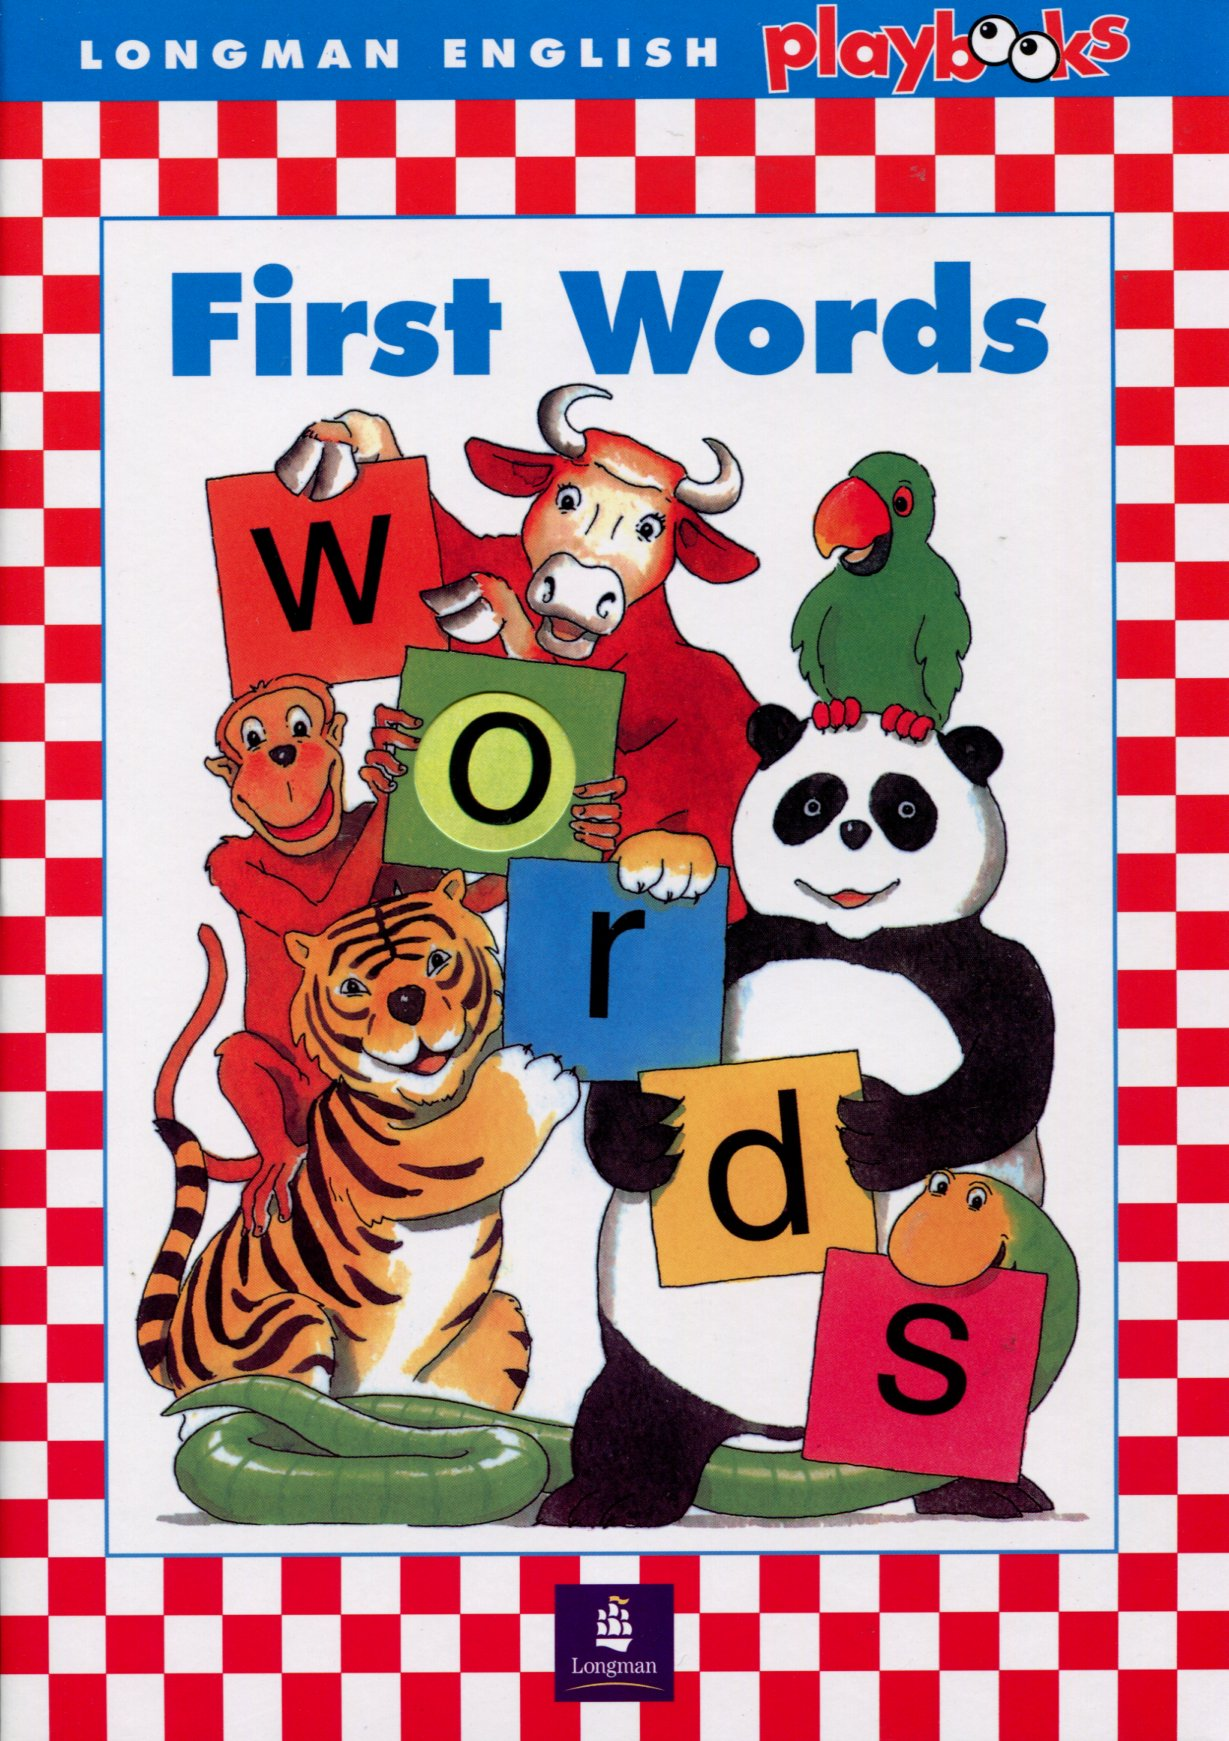 Longman English Playbooks: First Words